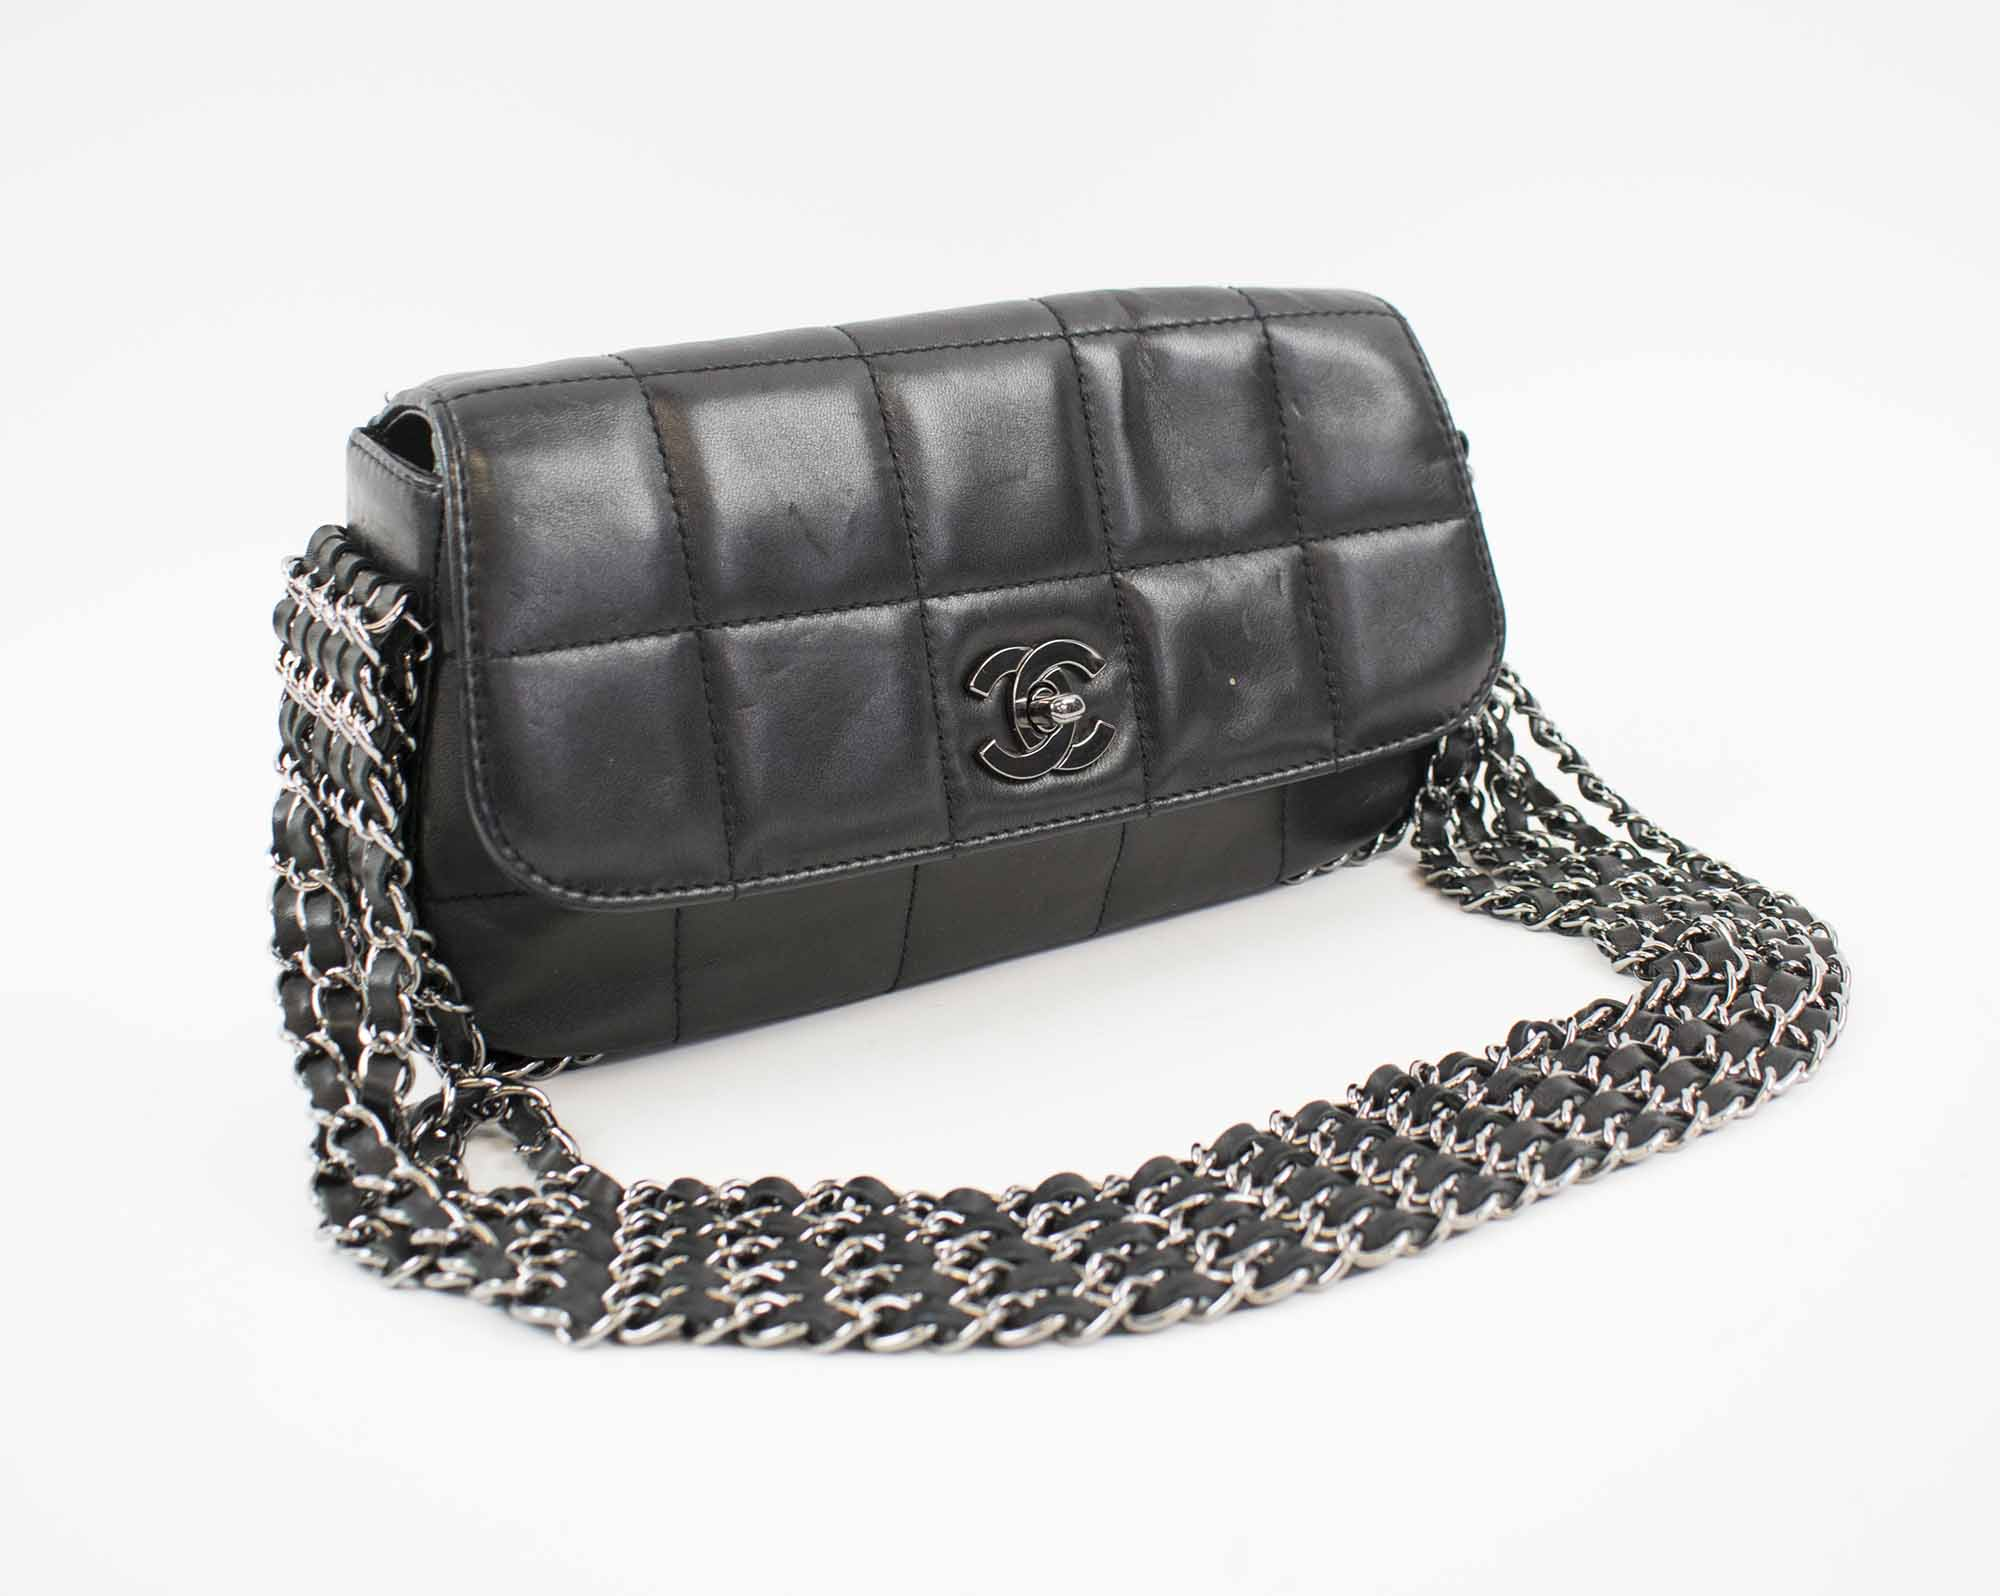 67a815ac2104 CHANEL FIVE CHAIN FLAP BAG, quilted lambskin with five silver tone ...